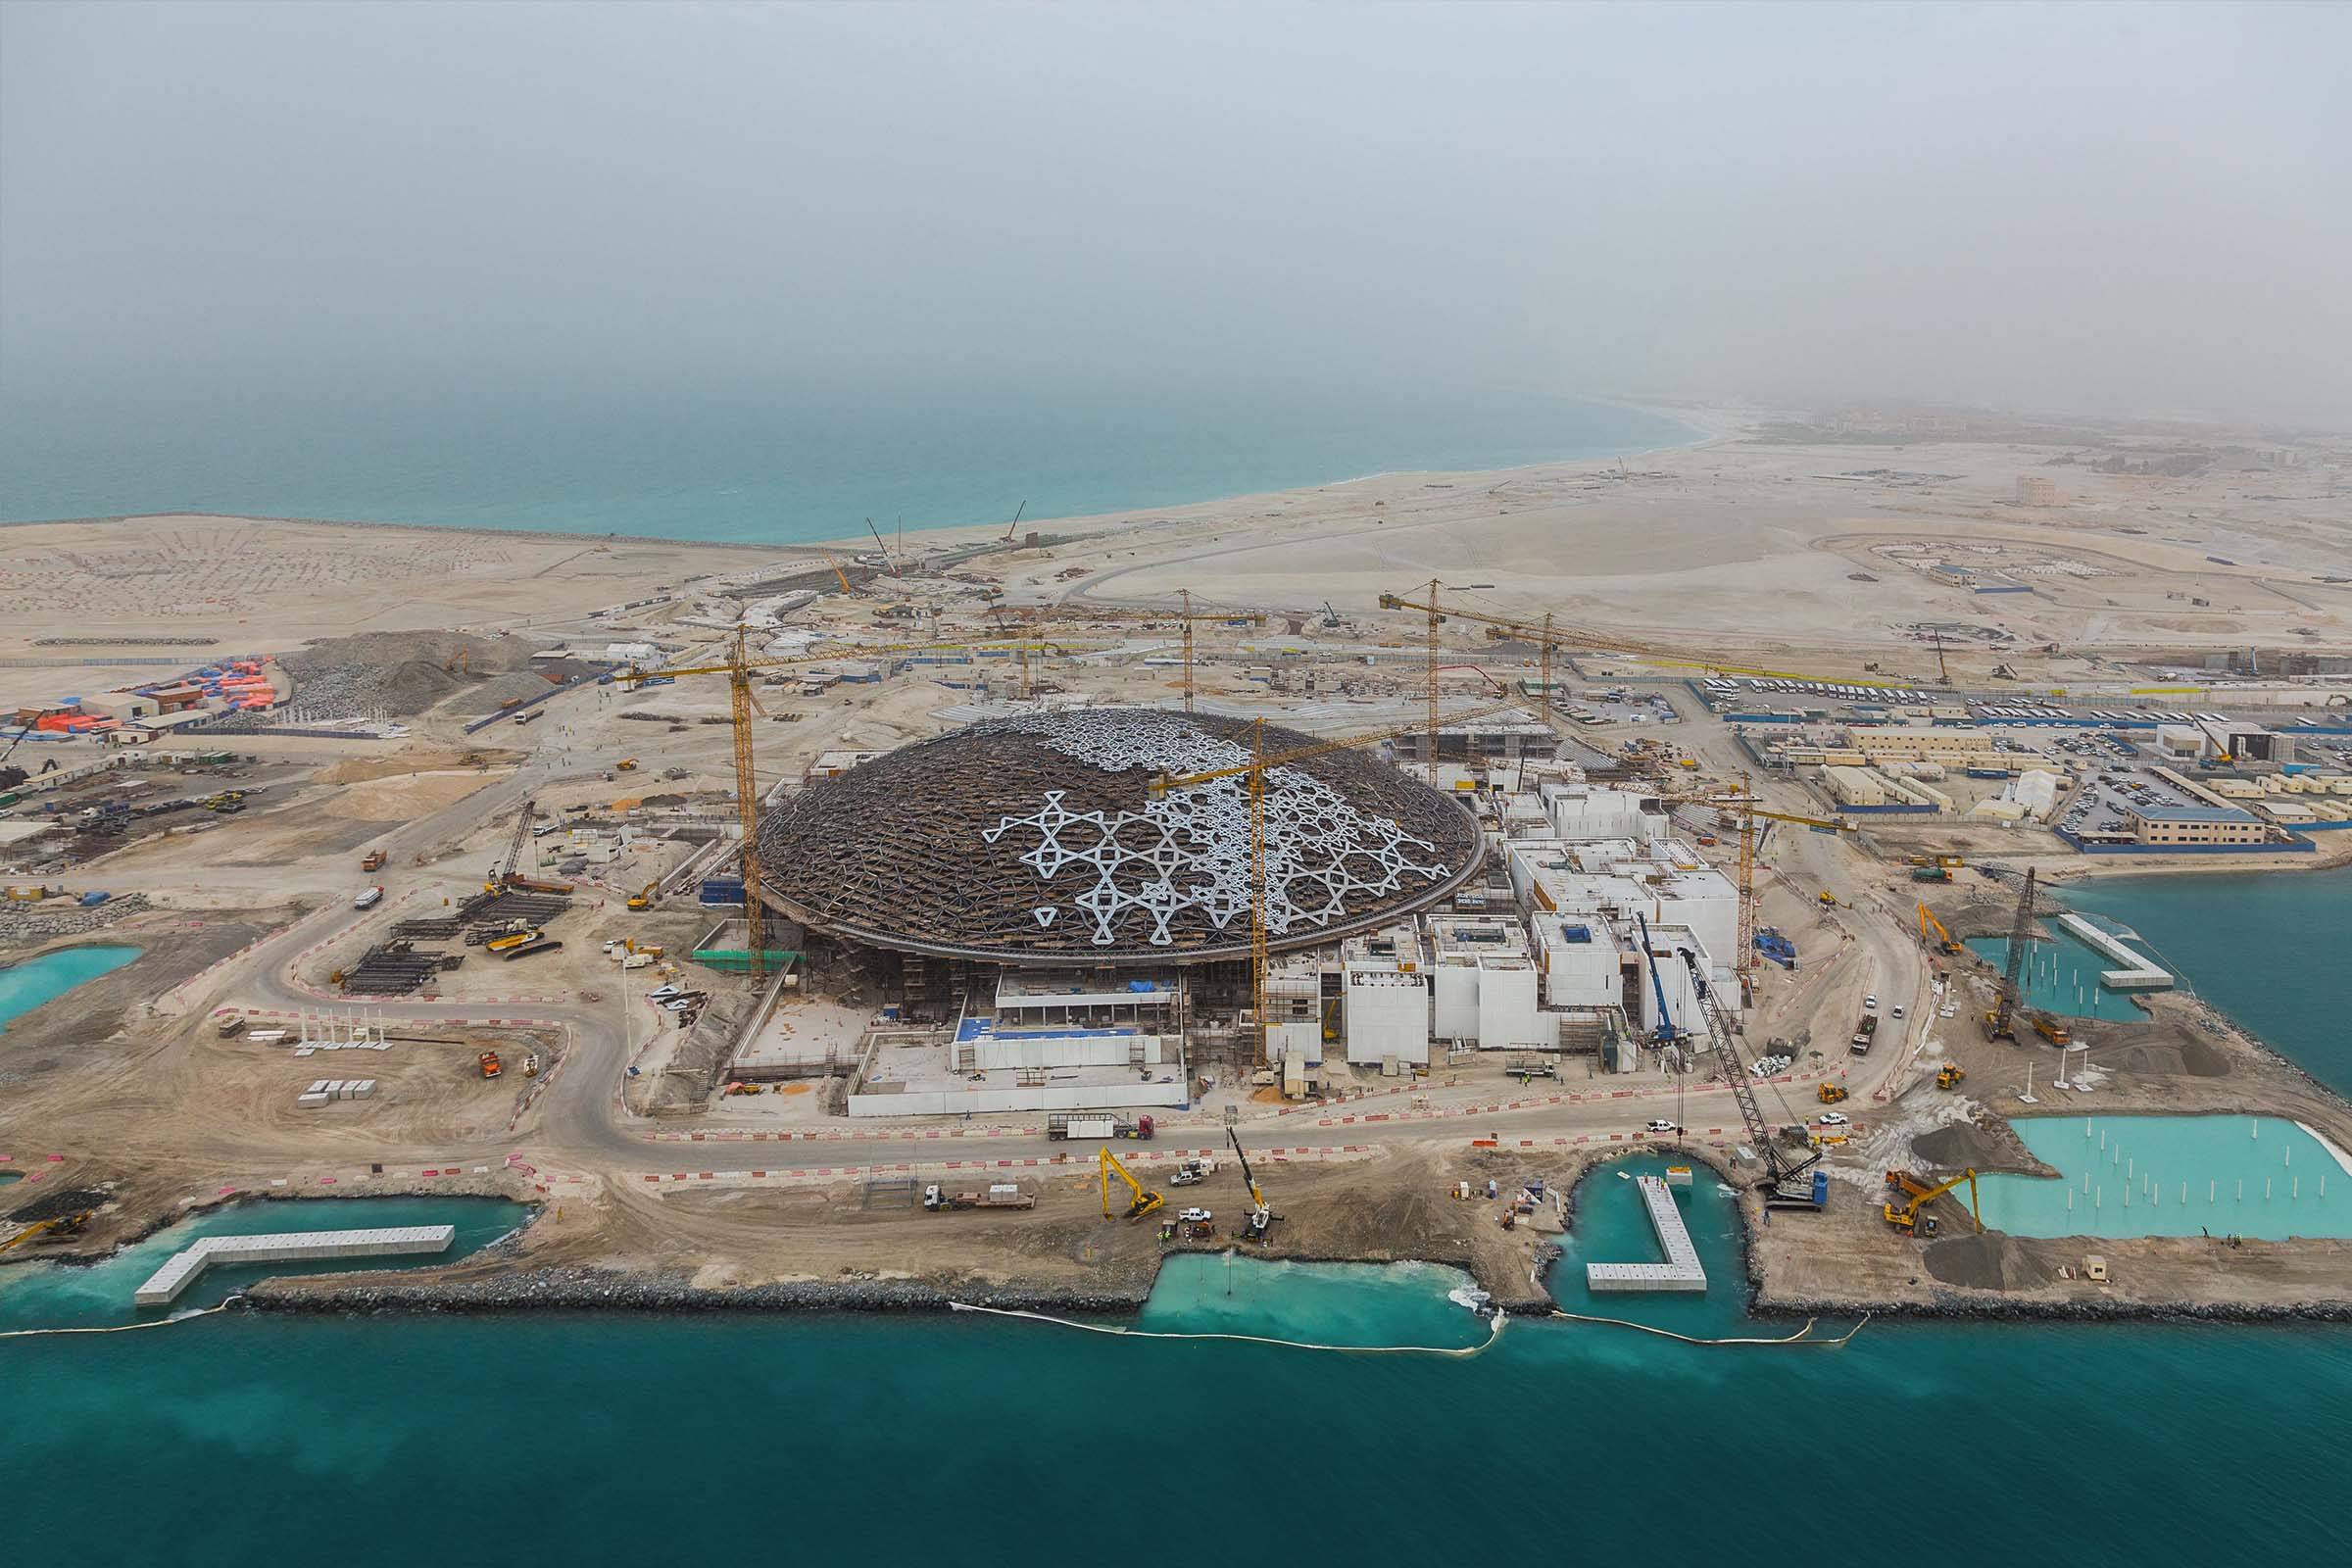 Aerial view of Louvre Abu Dhabi